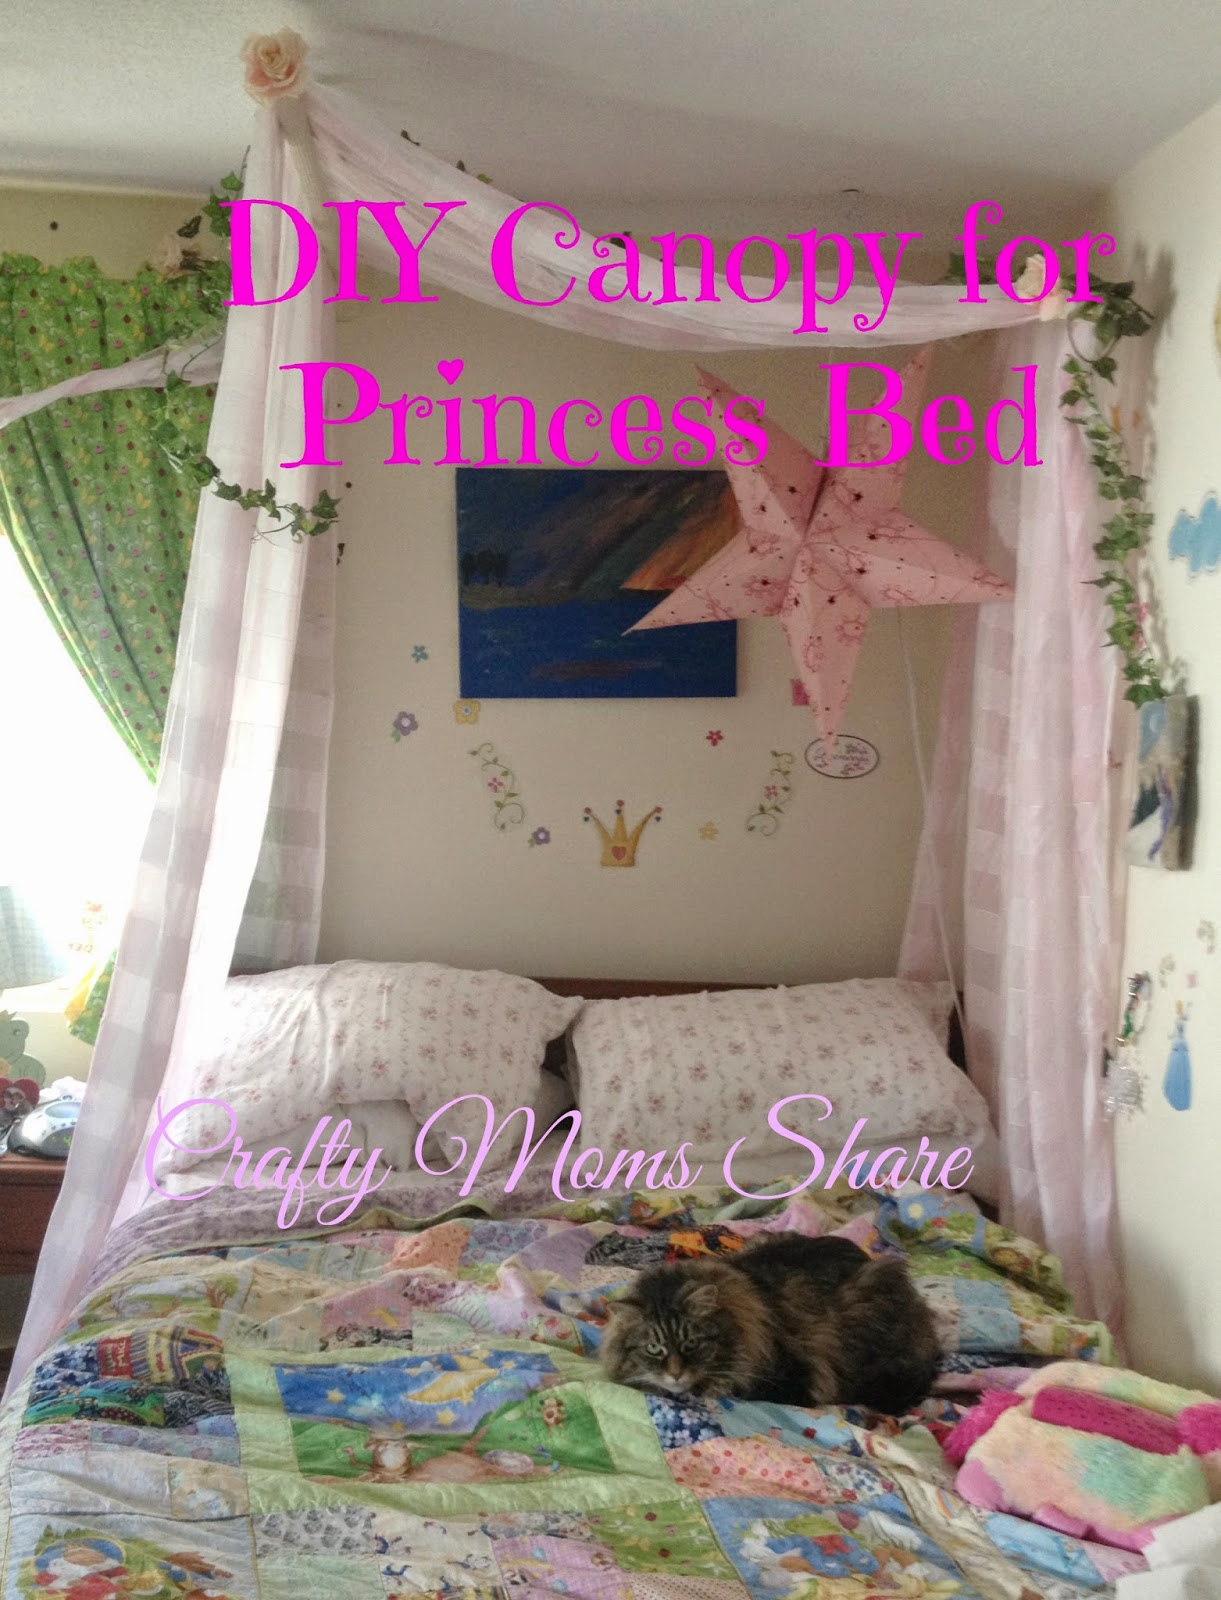 DIY Canopy for a Princess Bed & Crafty Moms Share: DIY Canopy for a Princess Bed